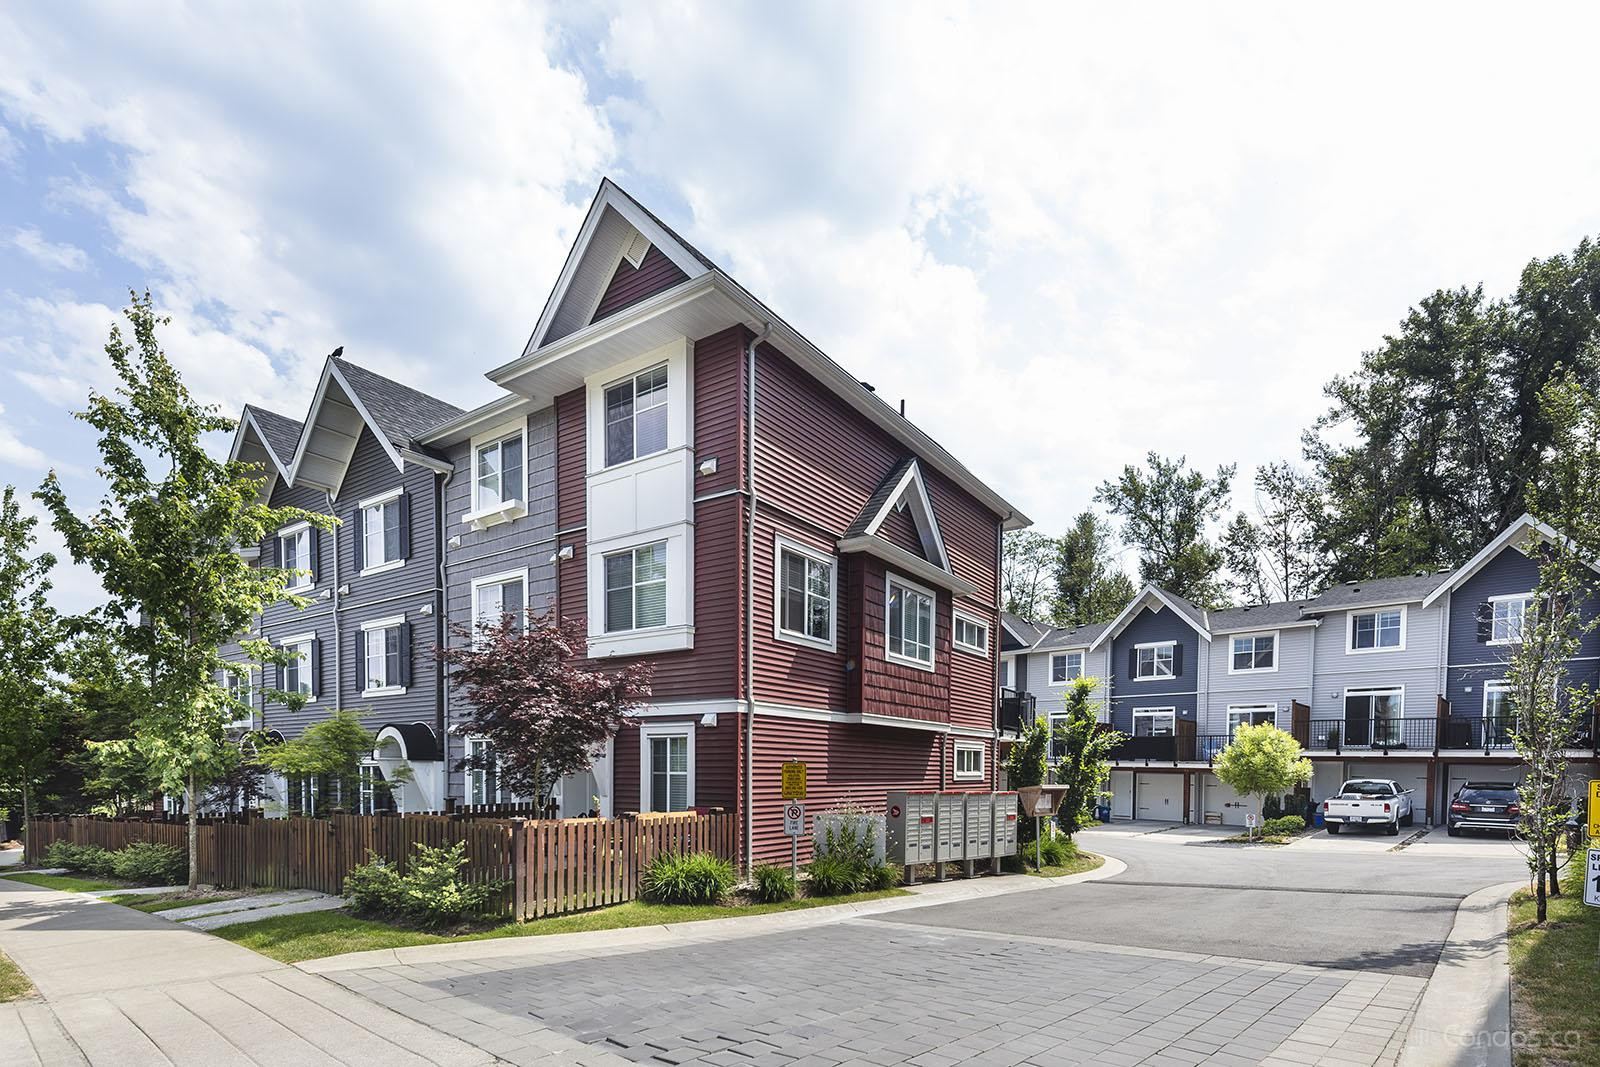 Brookside at 19128 65 Ave, Surrey 1